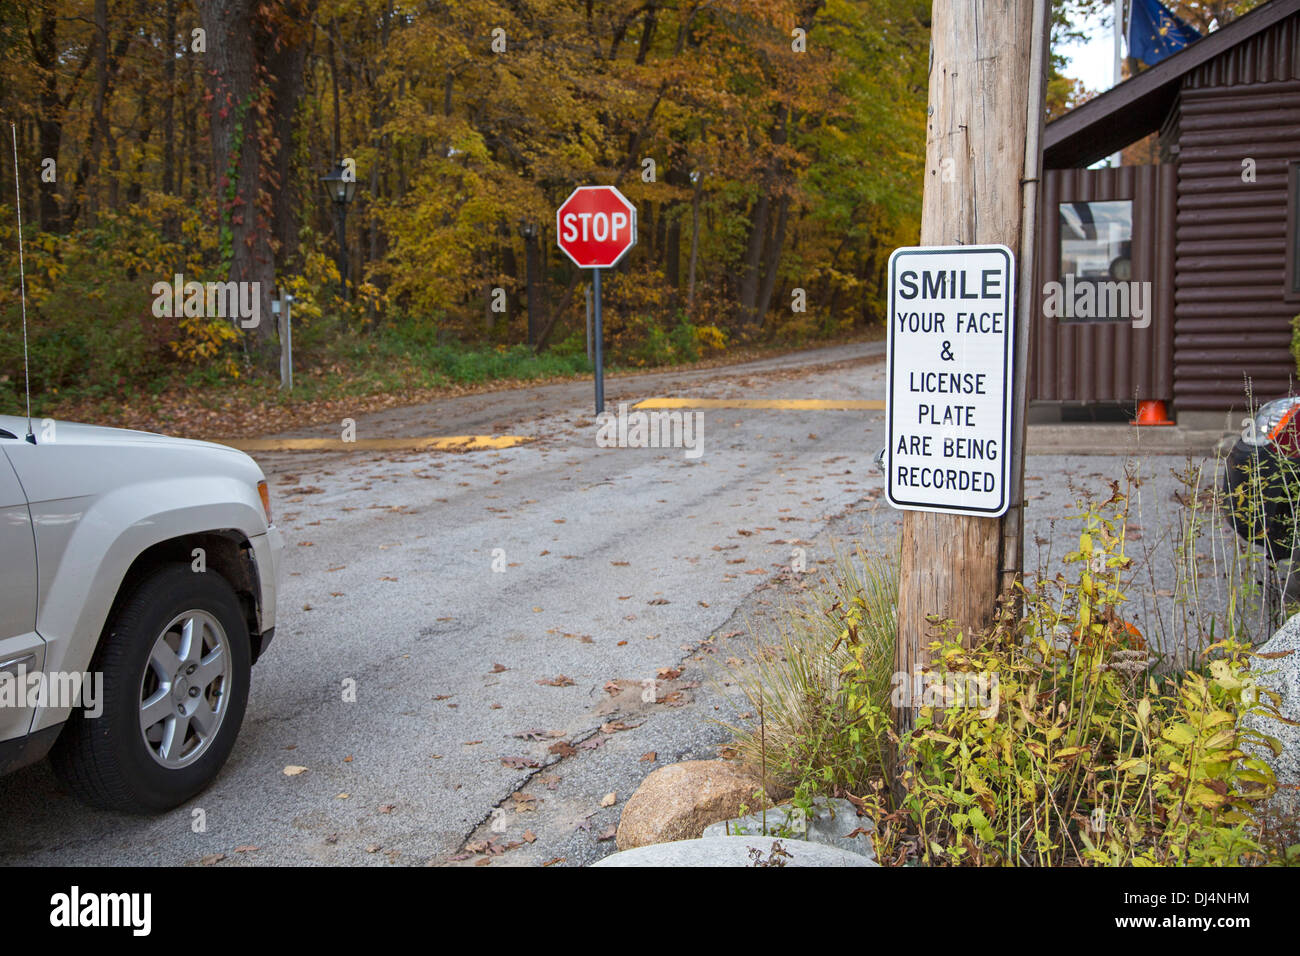 A sign at the entrance to the town of Dune Acres, Indiana announces surveillance measures. - Stock Image